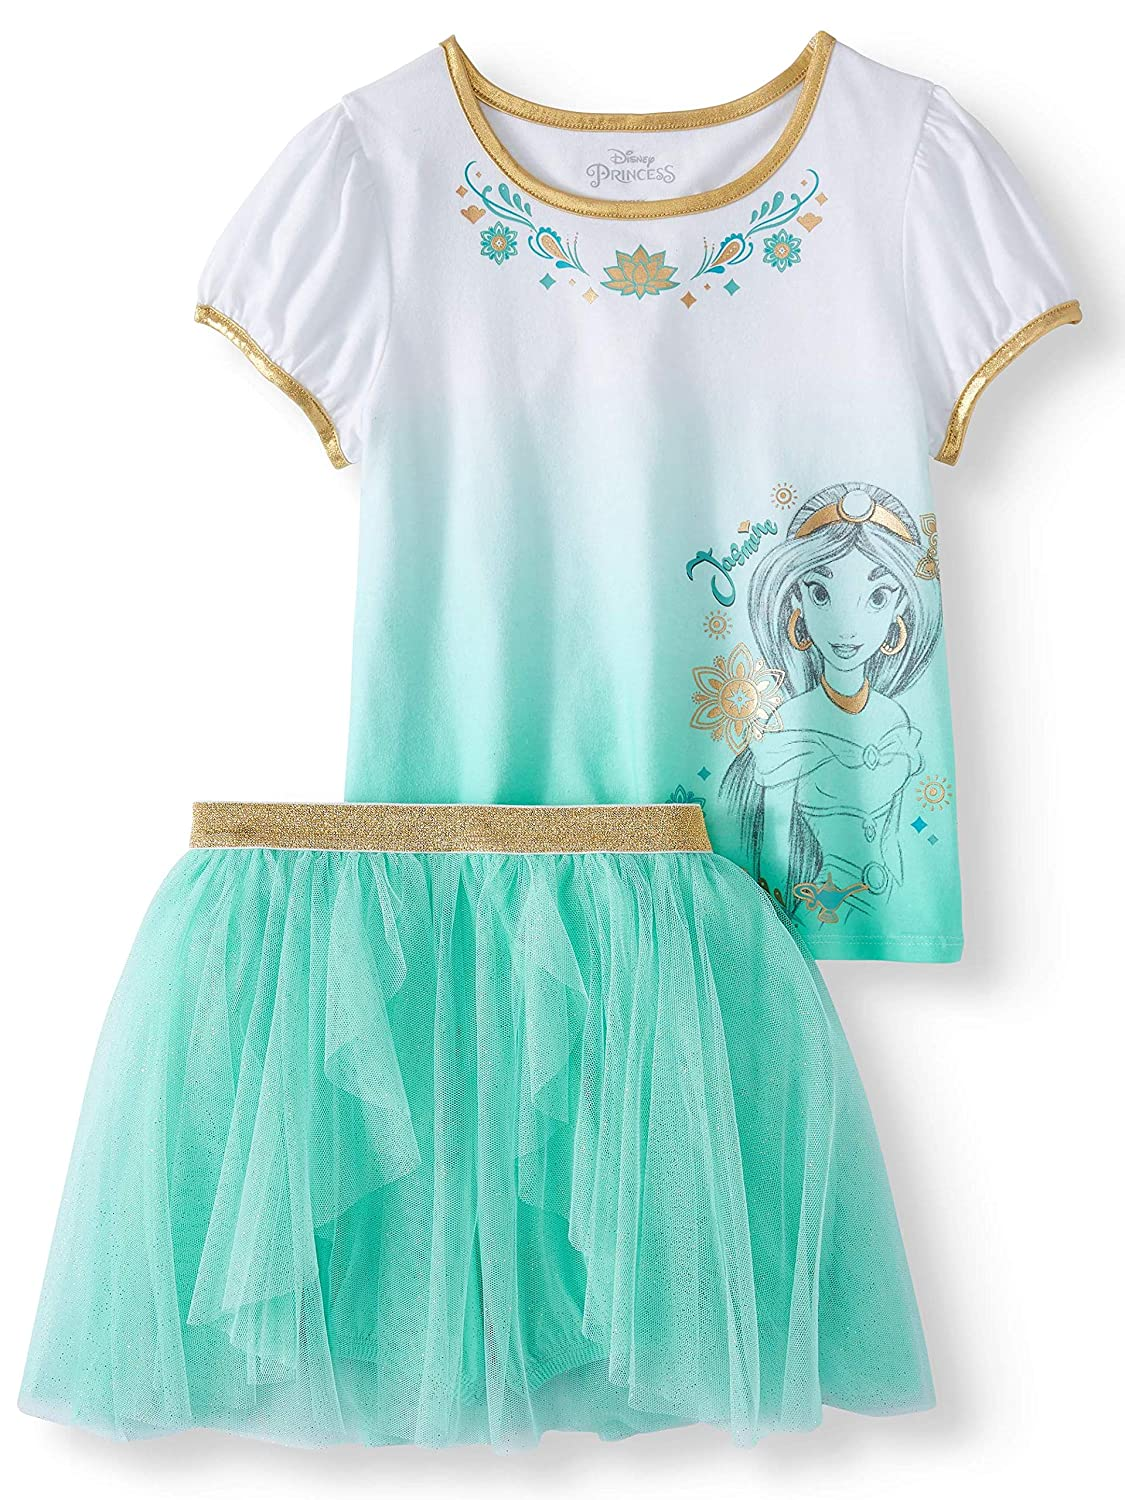 Disney Aladdin Princess Jasmine Gold Foil Shirt and Tulle Skirt 2 Pc Outfit Set